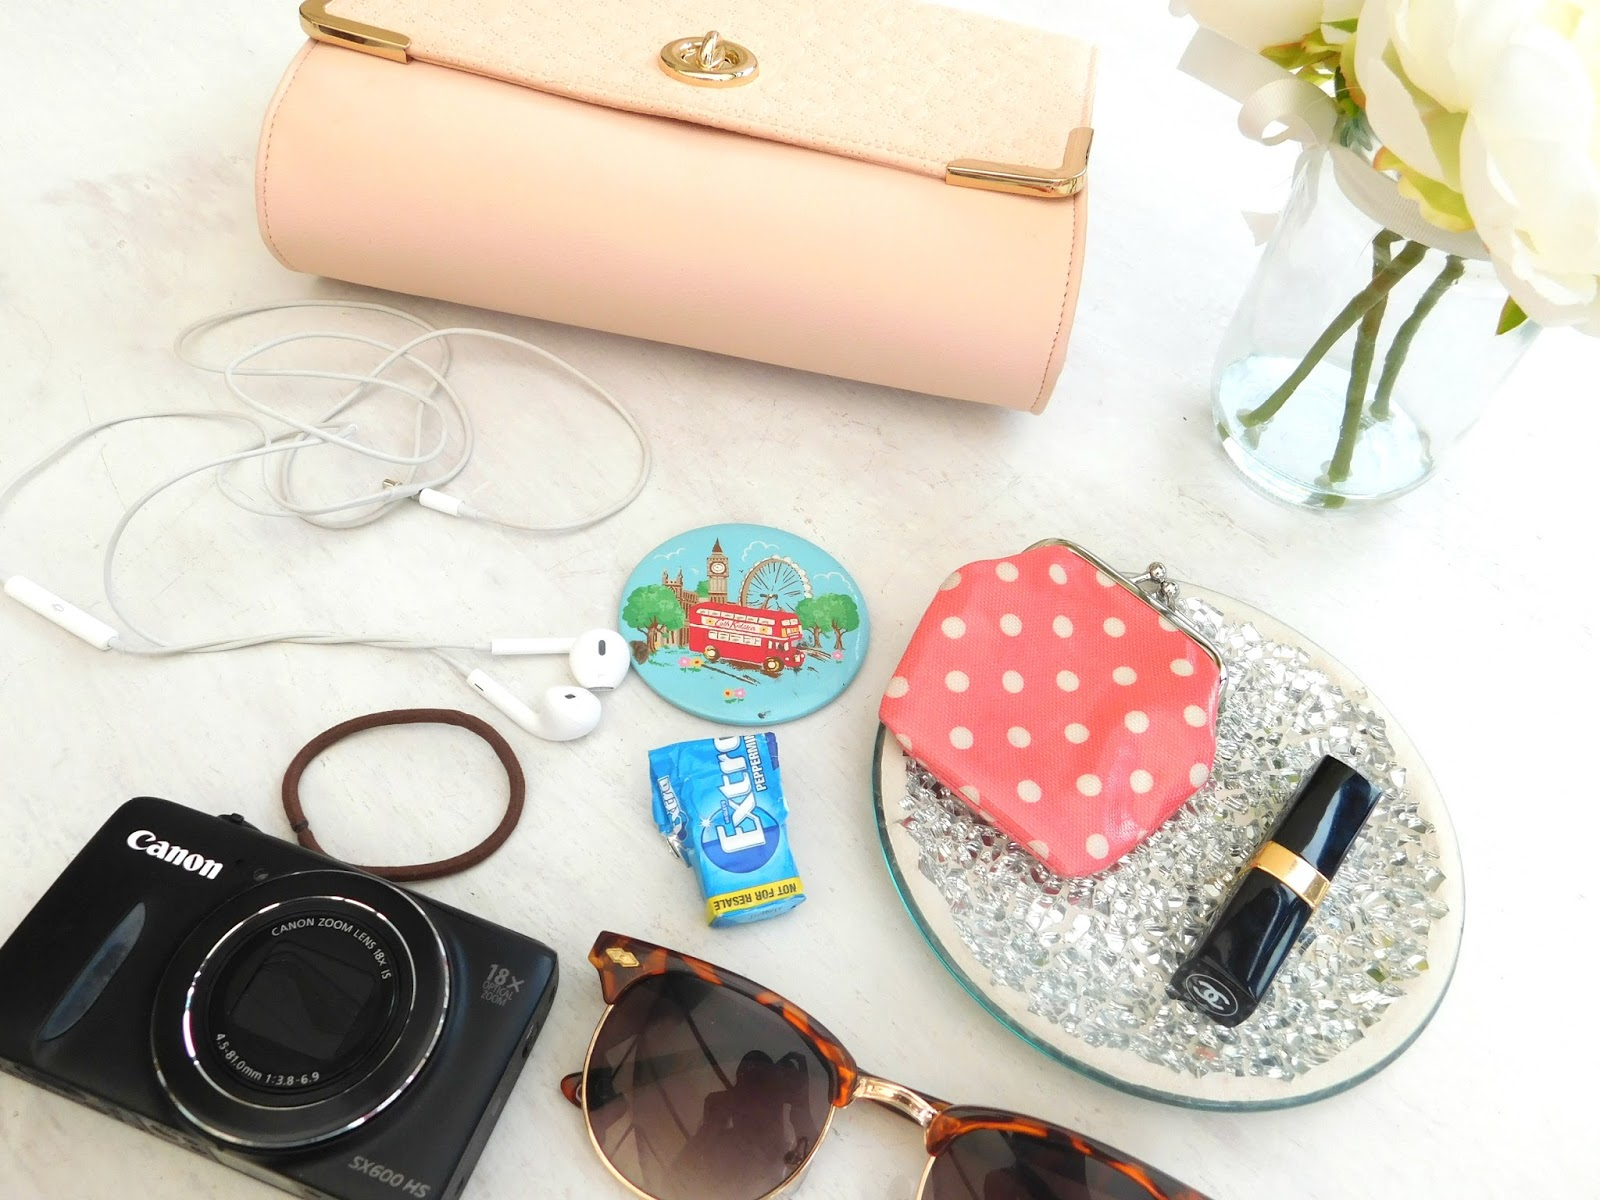 What's In My Bag, Handbags, New Look